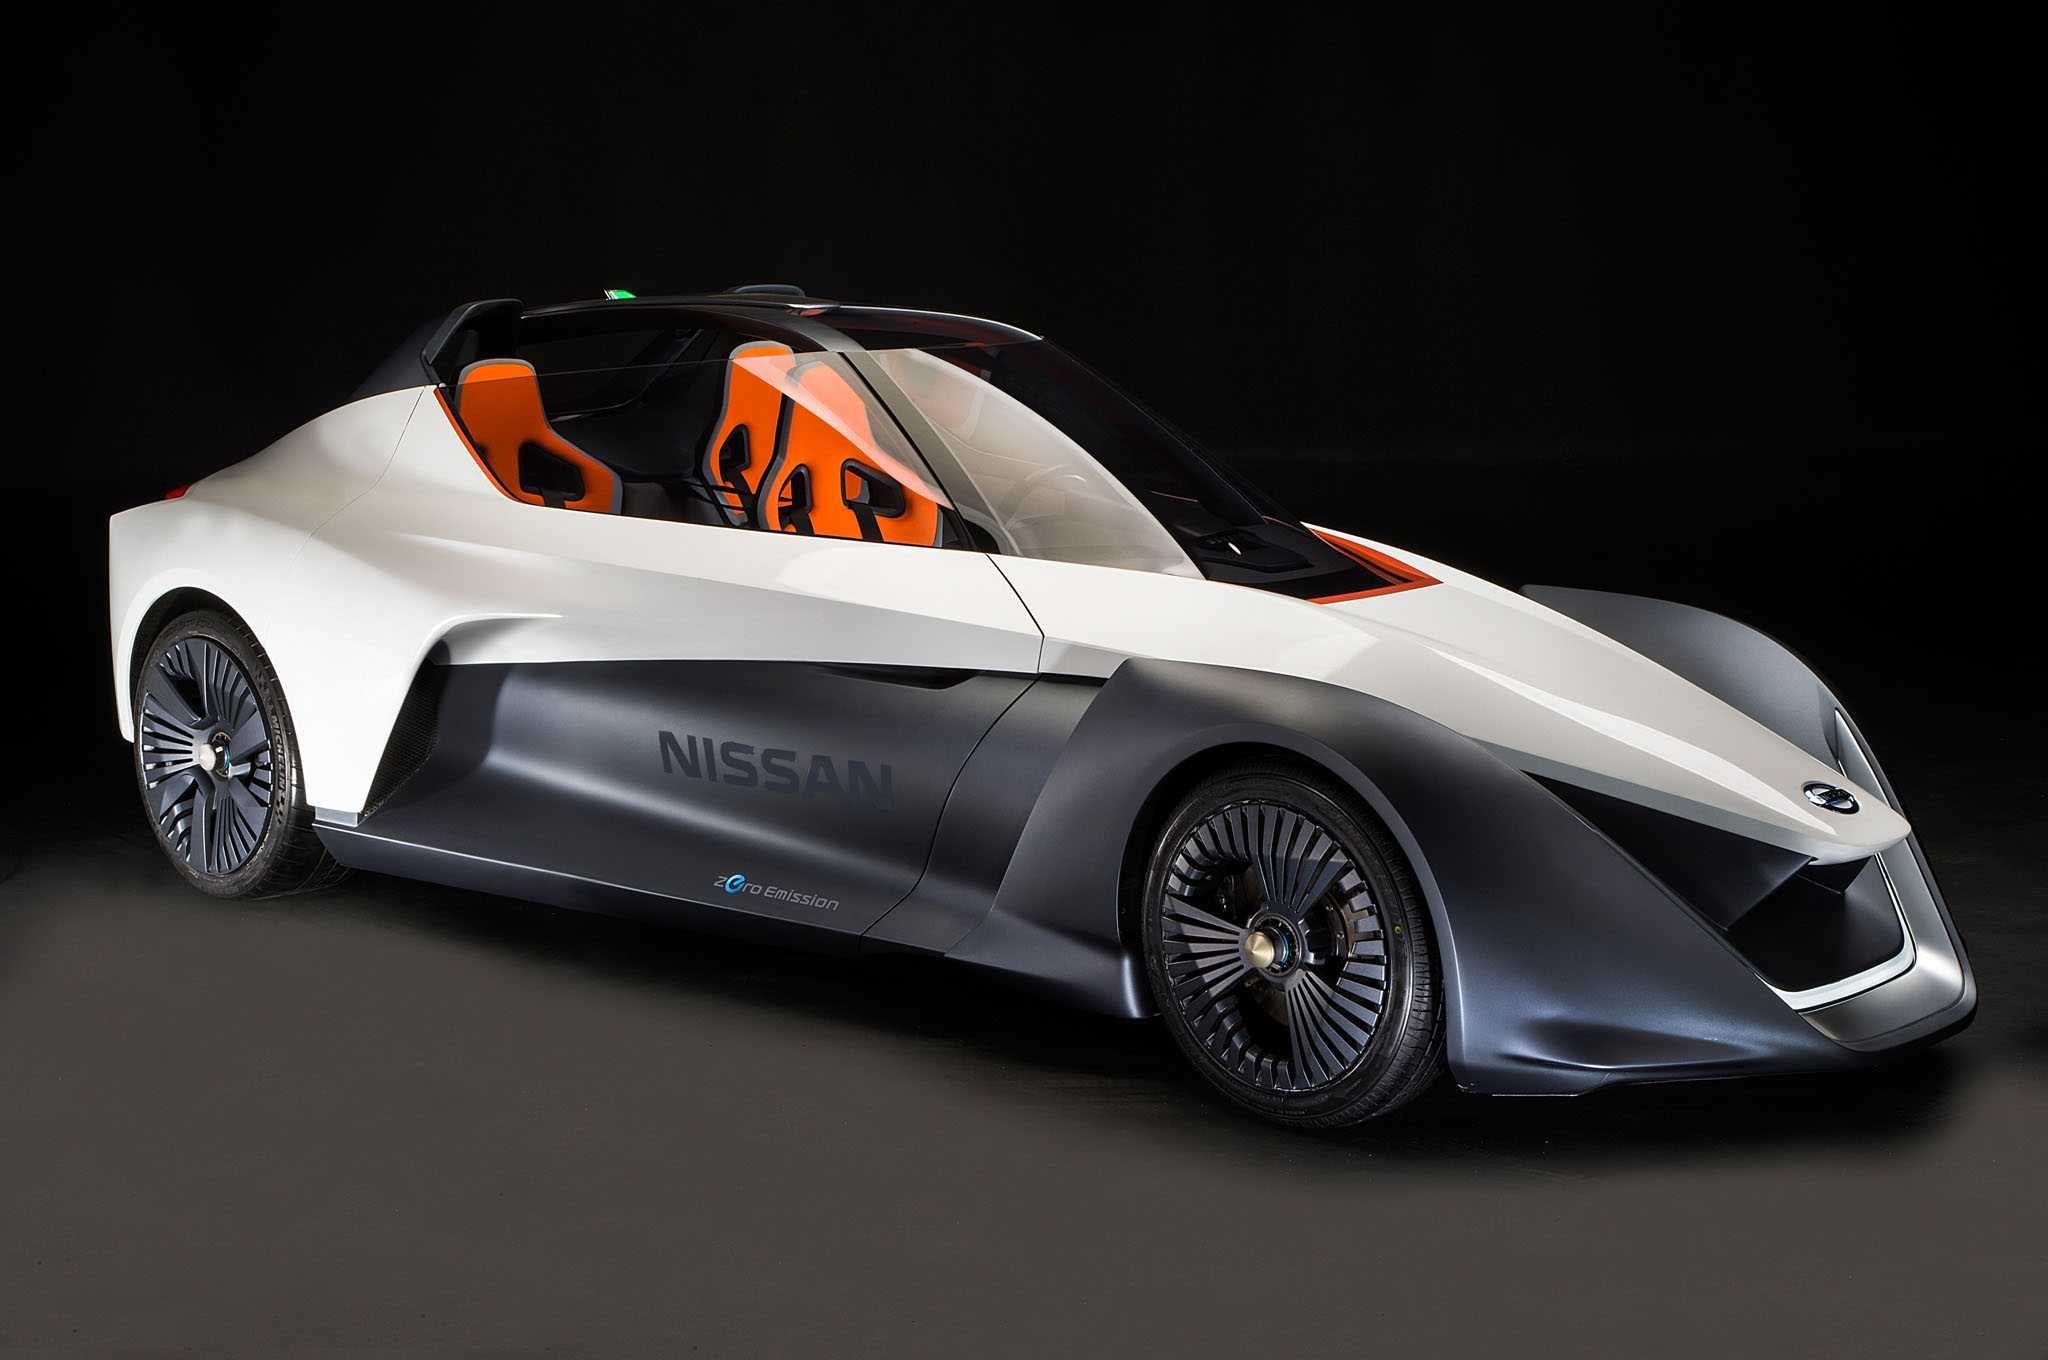 Nissan BladeGlider Is Now Officially Riding In Brazil, Has New Drift Mode